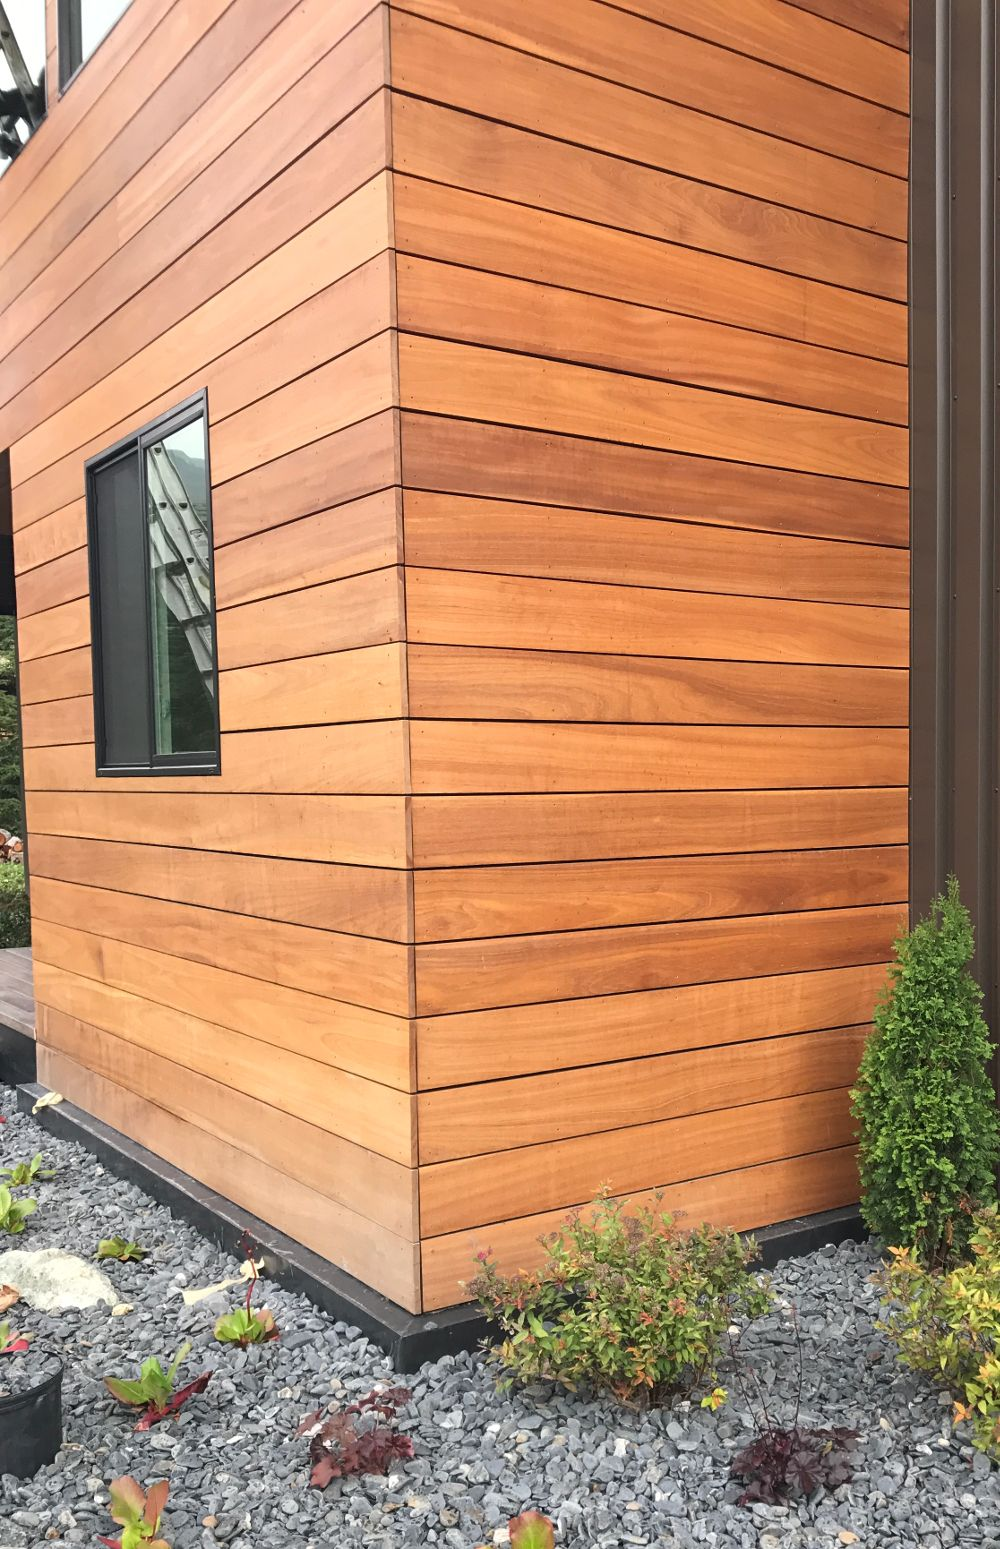 Batu Hardwood Real Wood Siding On This Contemporary Home Get Your Wood Siding Needs Fulfilled With Nova Usa Wood Wood Siding Exterior Wood Siding Cedar Siding